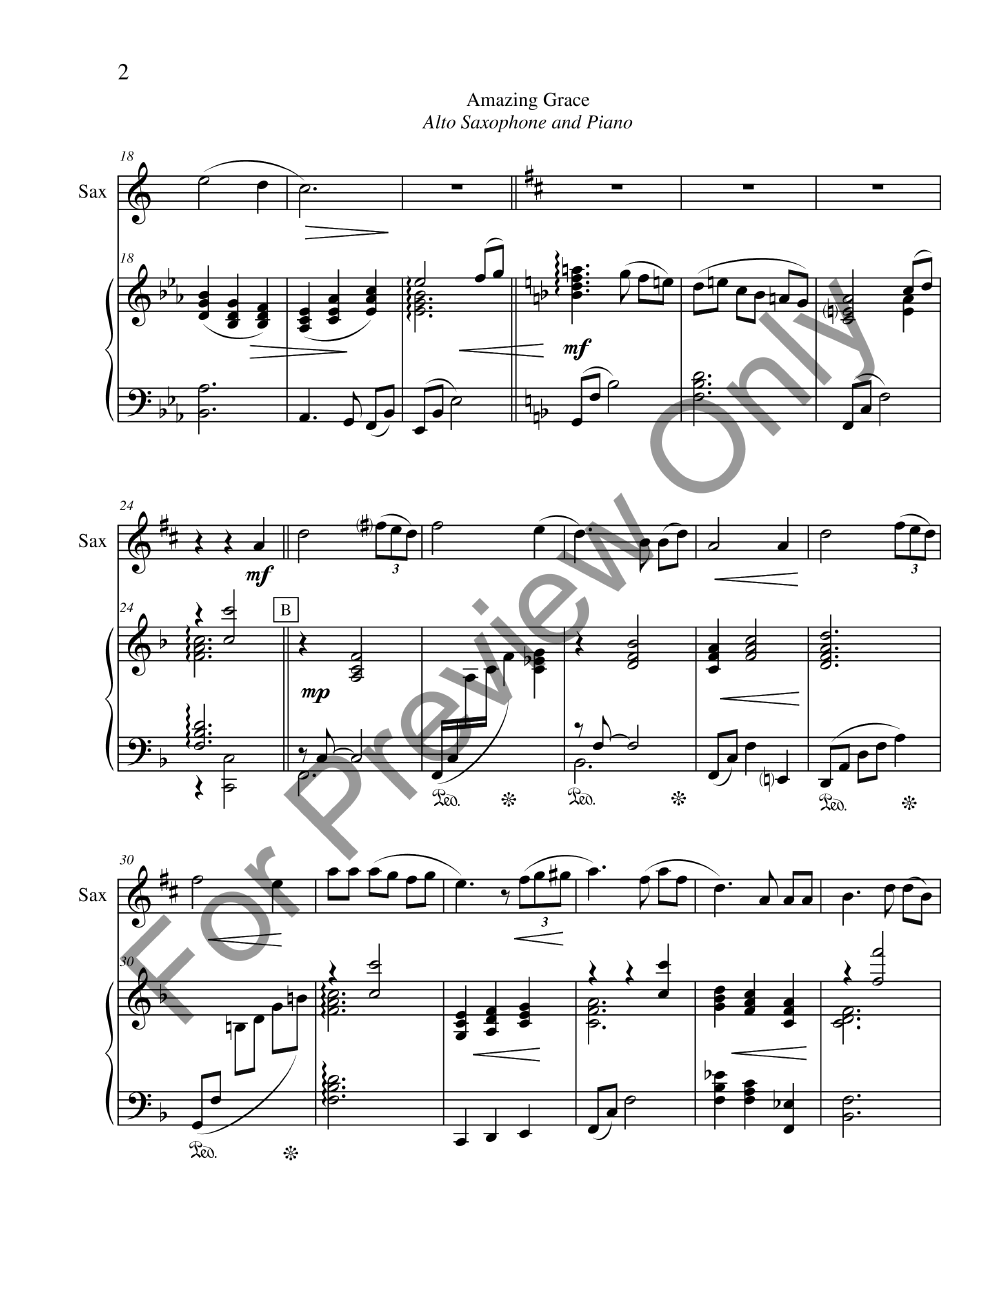 graphic relating to Free Printable Piano Sheet Music for Amazing Grace known as Extraordinary Grace (Alto Sax Solo with Pianonbs J.W. Pepper